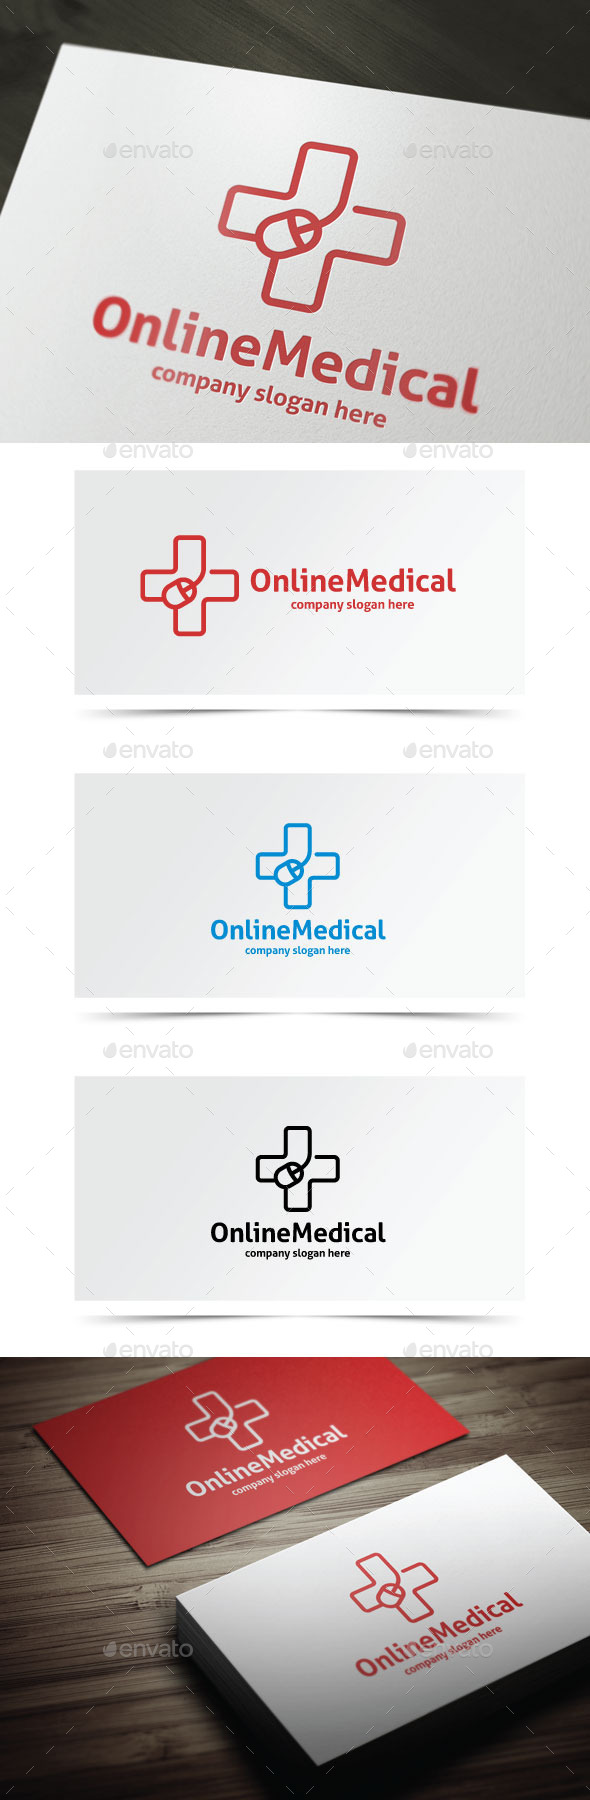 GraphicRiver Online Medical 10638048